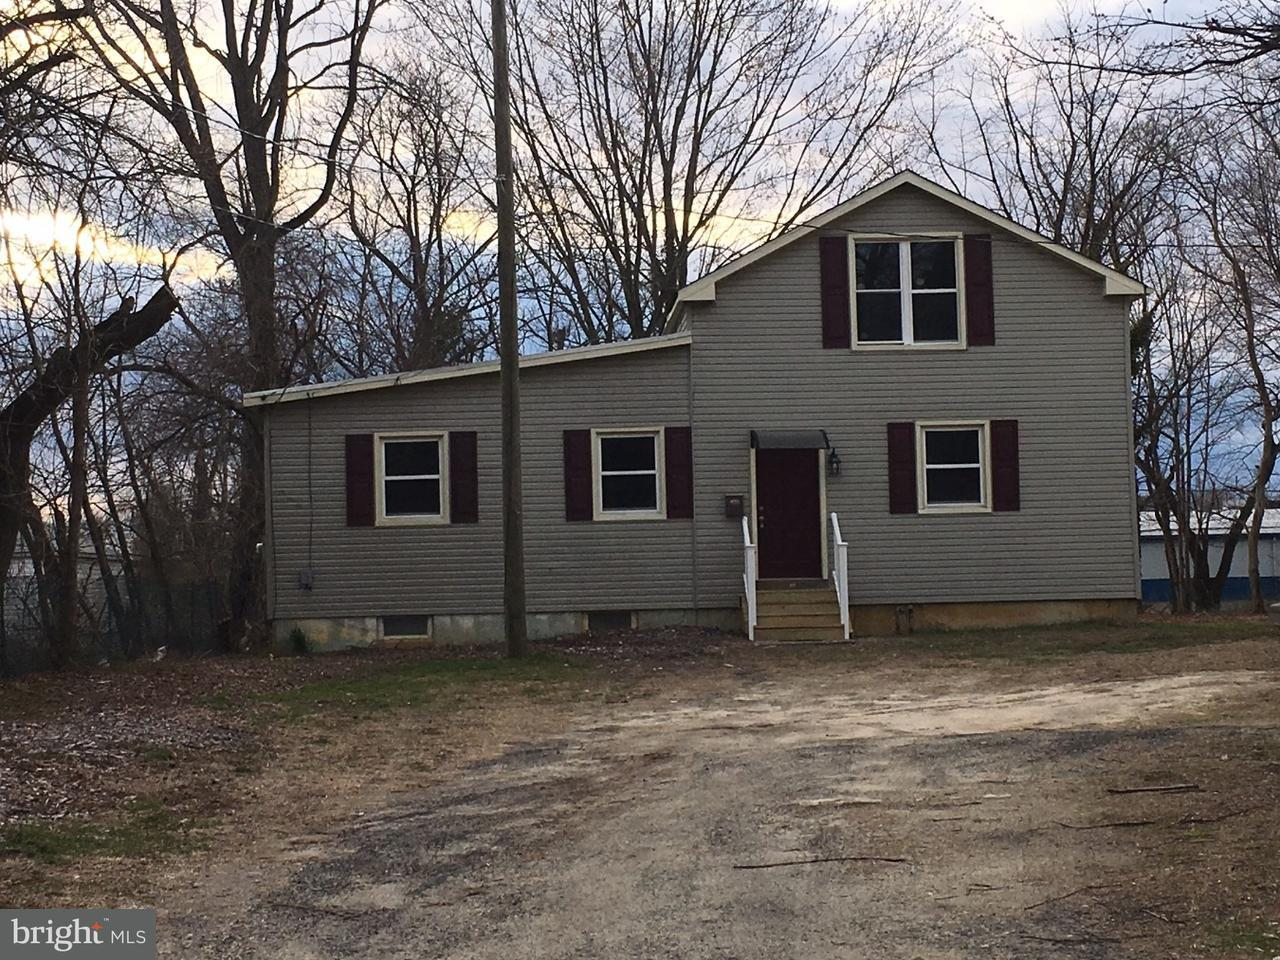 Single Family Home for Rent at 12 KERHART AVE #16 Berlin, New Jersey 08009 United States